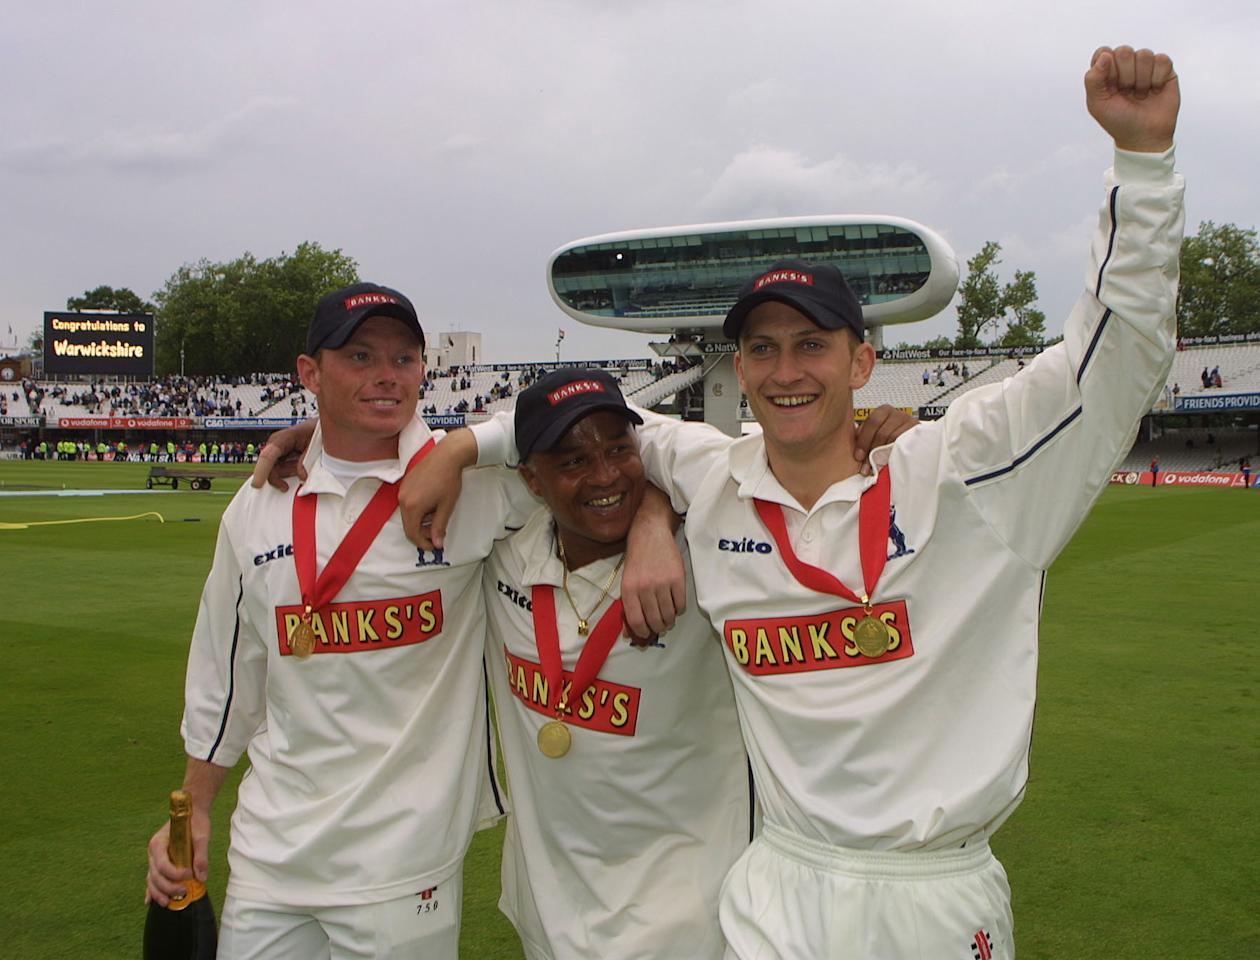 LONDON - JUNE 22:   Man of the Match Ian Bell [Left], Keith Piper [Center] and Jim Troughton [Right] of Warwickshire celebrate after beating Essex in the Benson & Hedges Cup Final between Essex and Warwickshire at Lord's, London. .     (Photo by Craig Prentis/Getty Images)